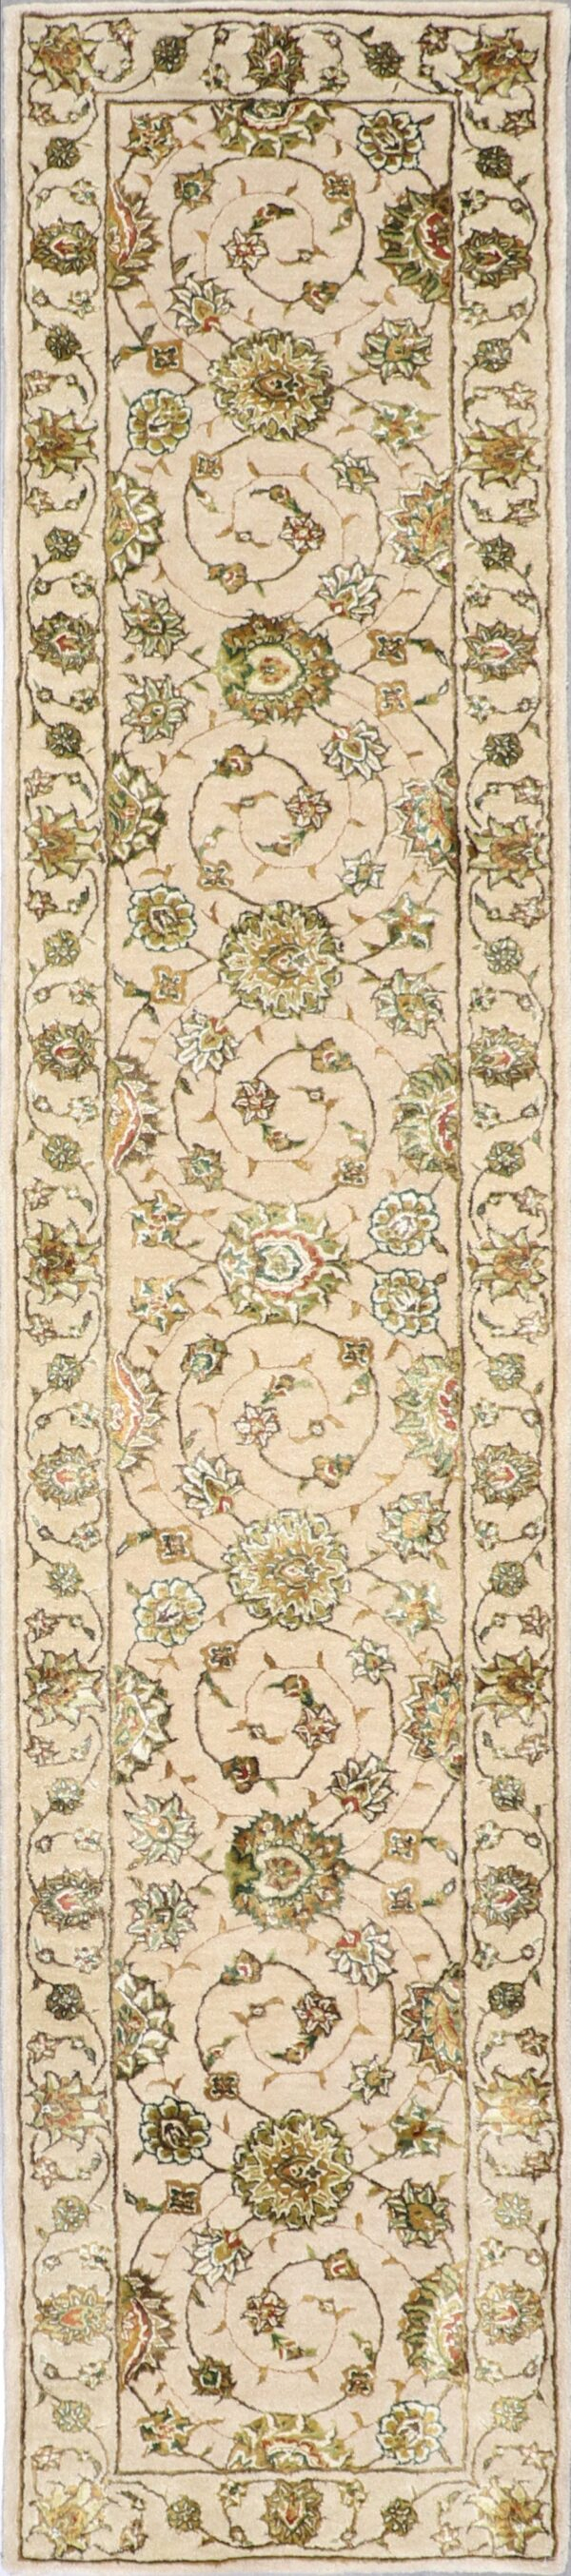 """2'5""""x12' Decorative Wool & Silk Hand-Tufted Rug - Direct Rug Import 